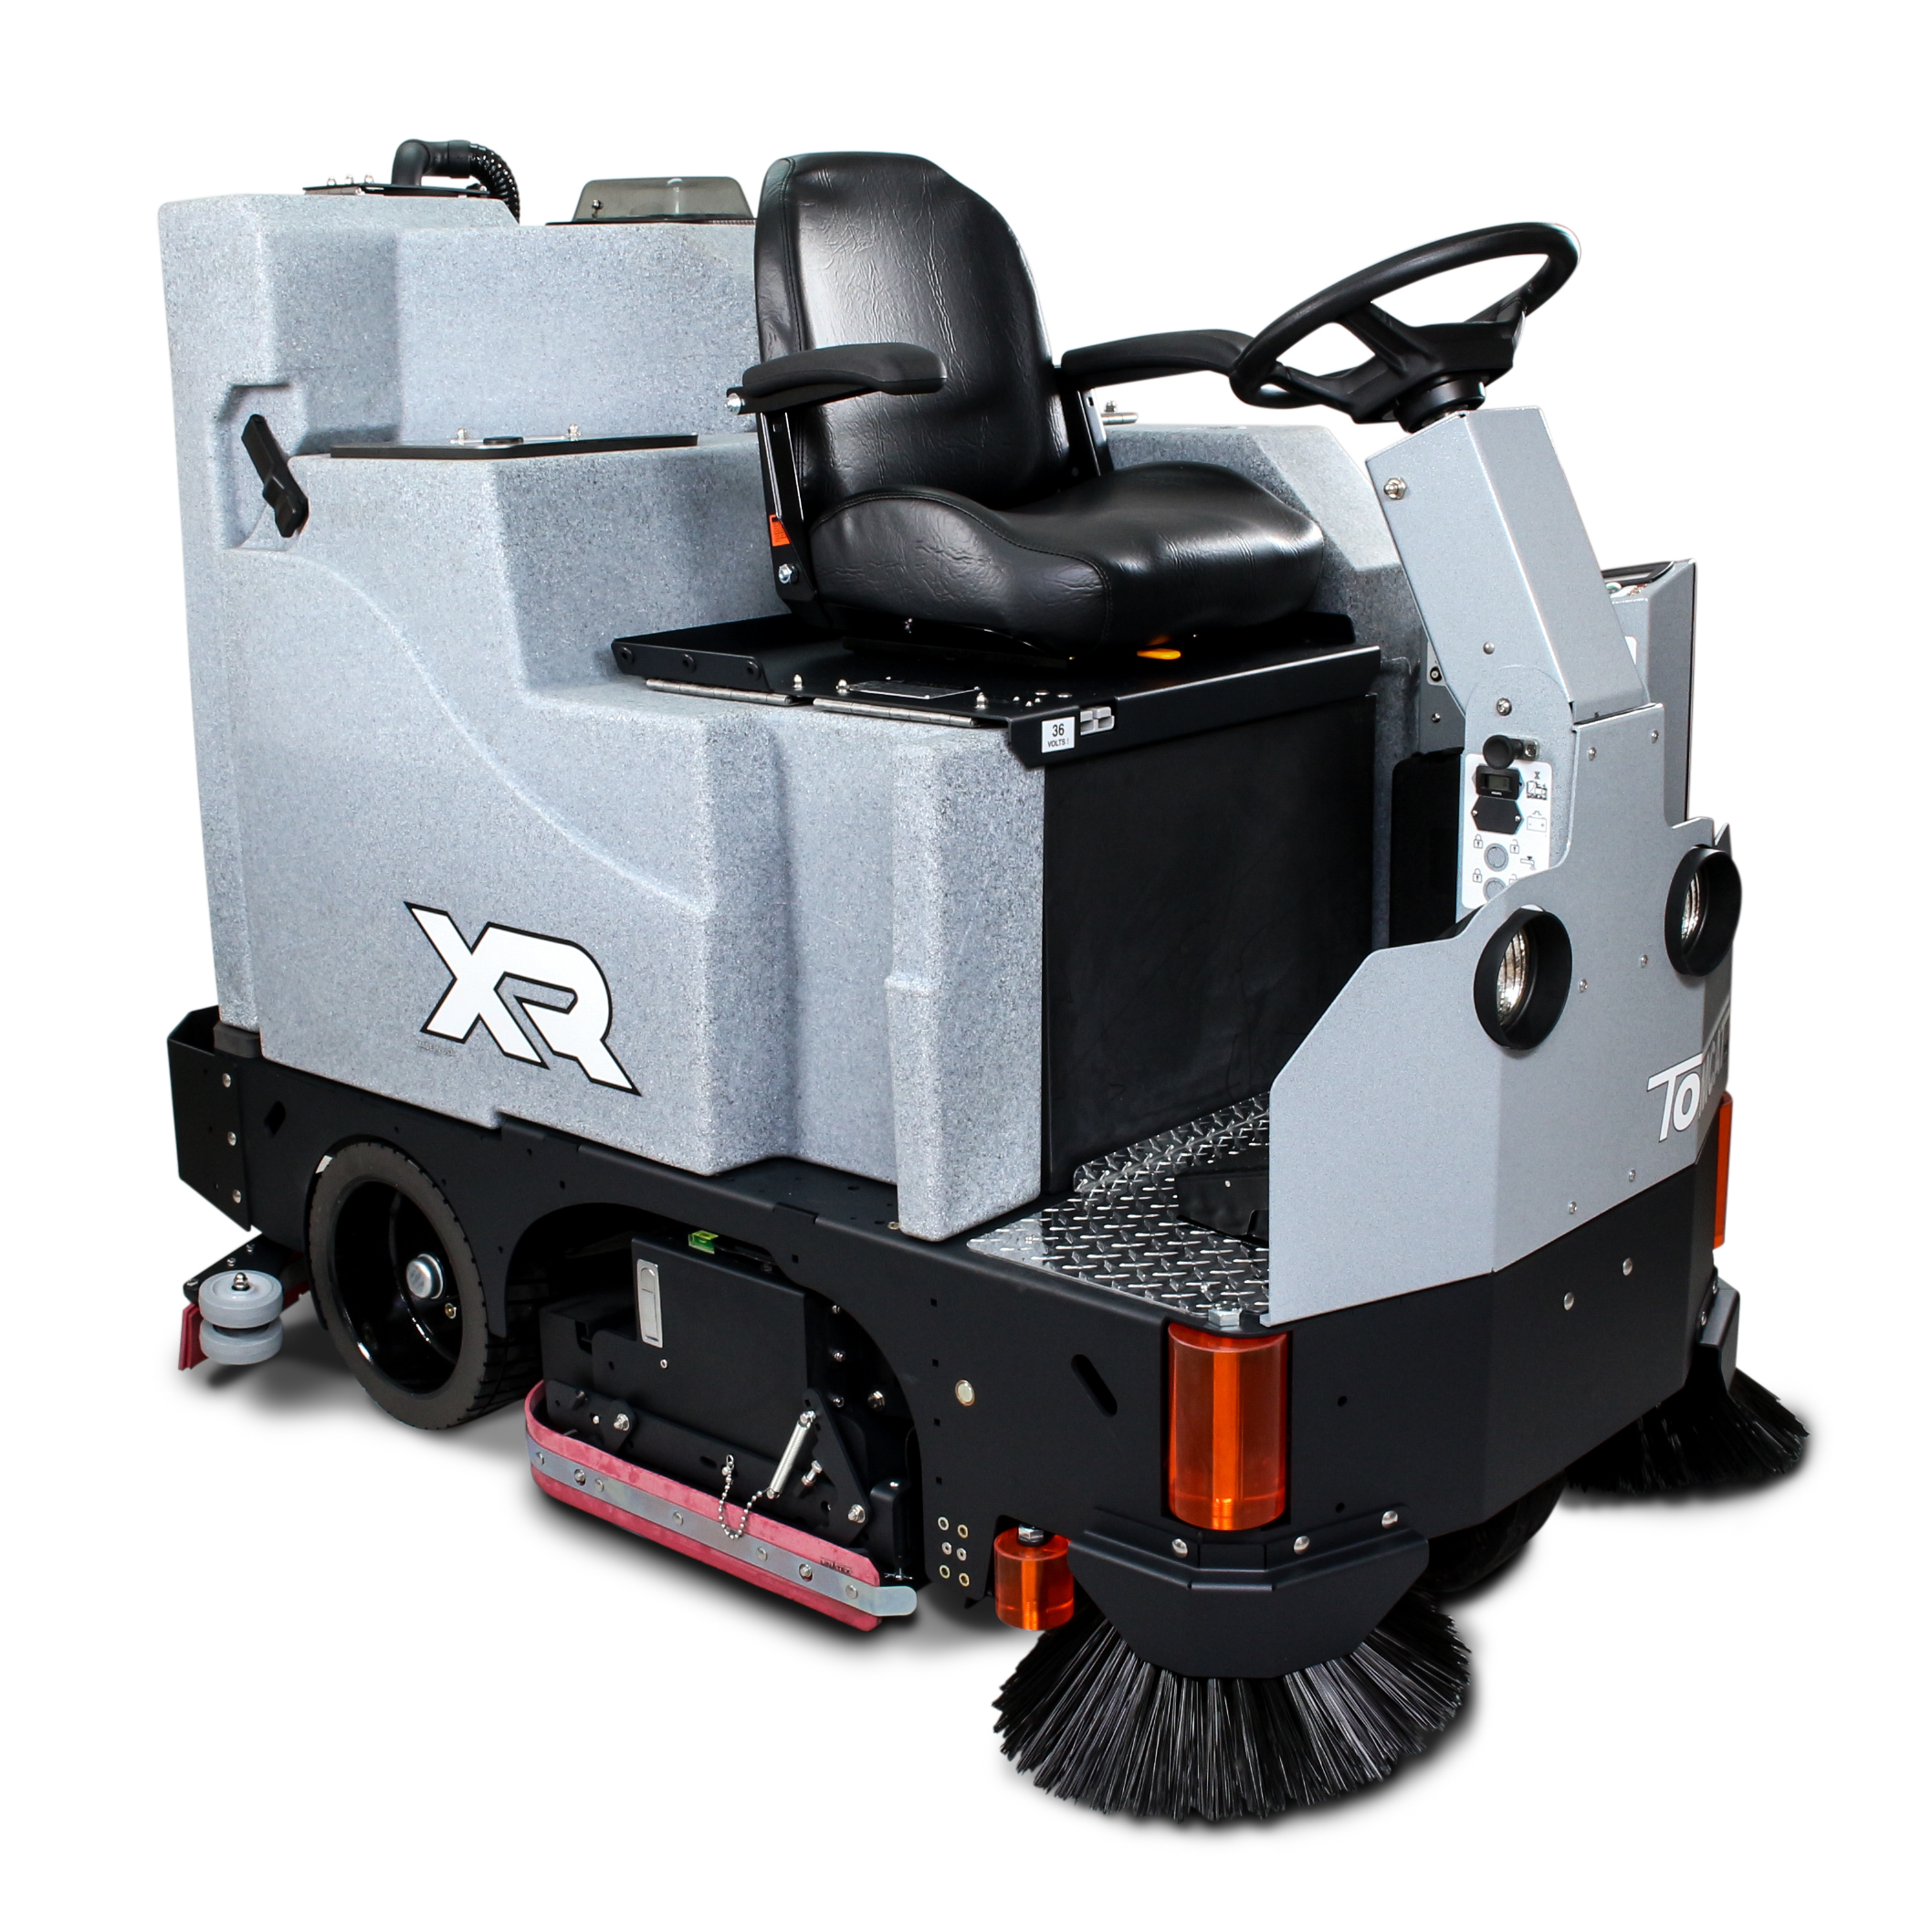 home sweeper commercial mercial tomcat inspirational floors magnum dryer cleaning behind idea floor walk fresh of scrubber